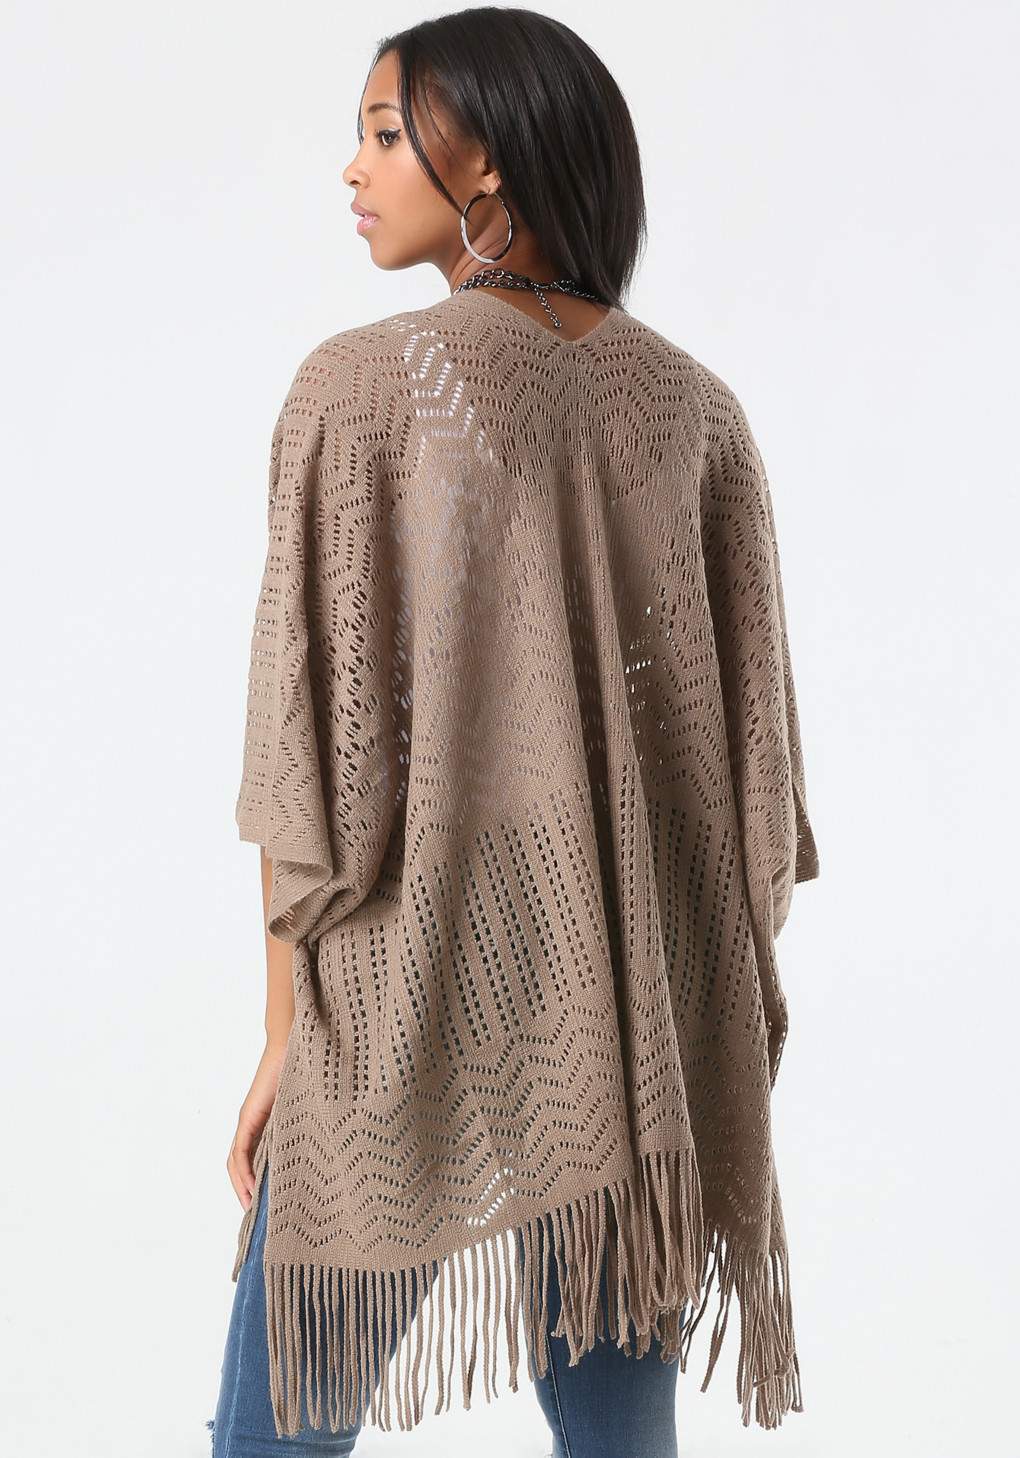 Awesome Lyst Bebe Pattern Knit Fringe Ruana In Brown Ruana Pattern Of Amazing 41 Pictures Ruana Pattern